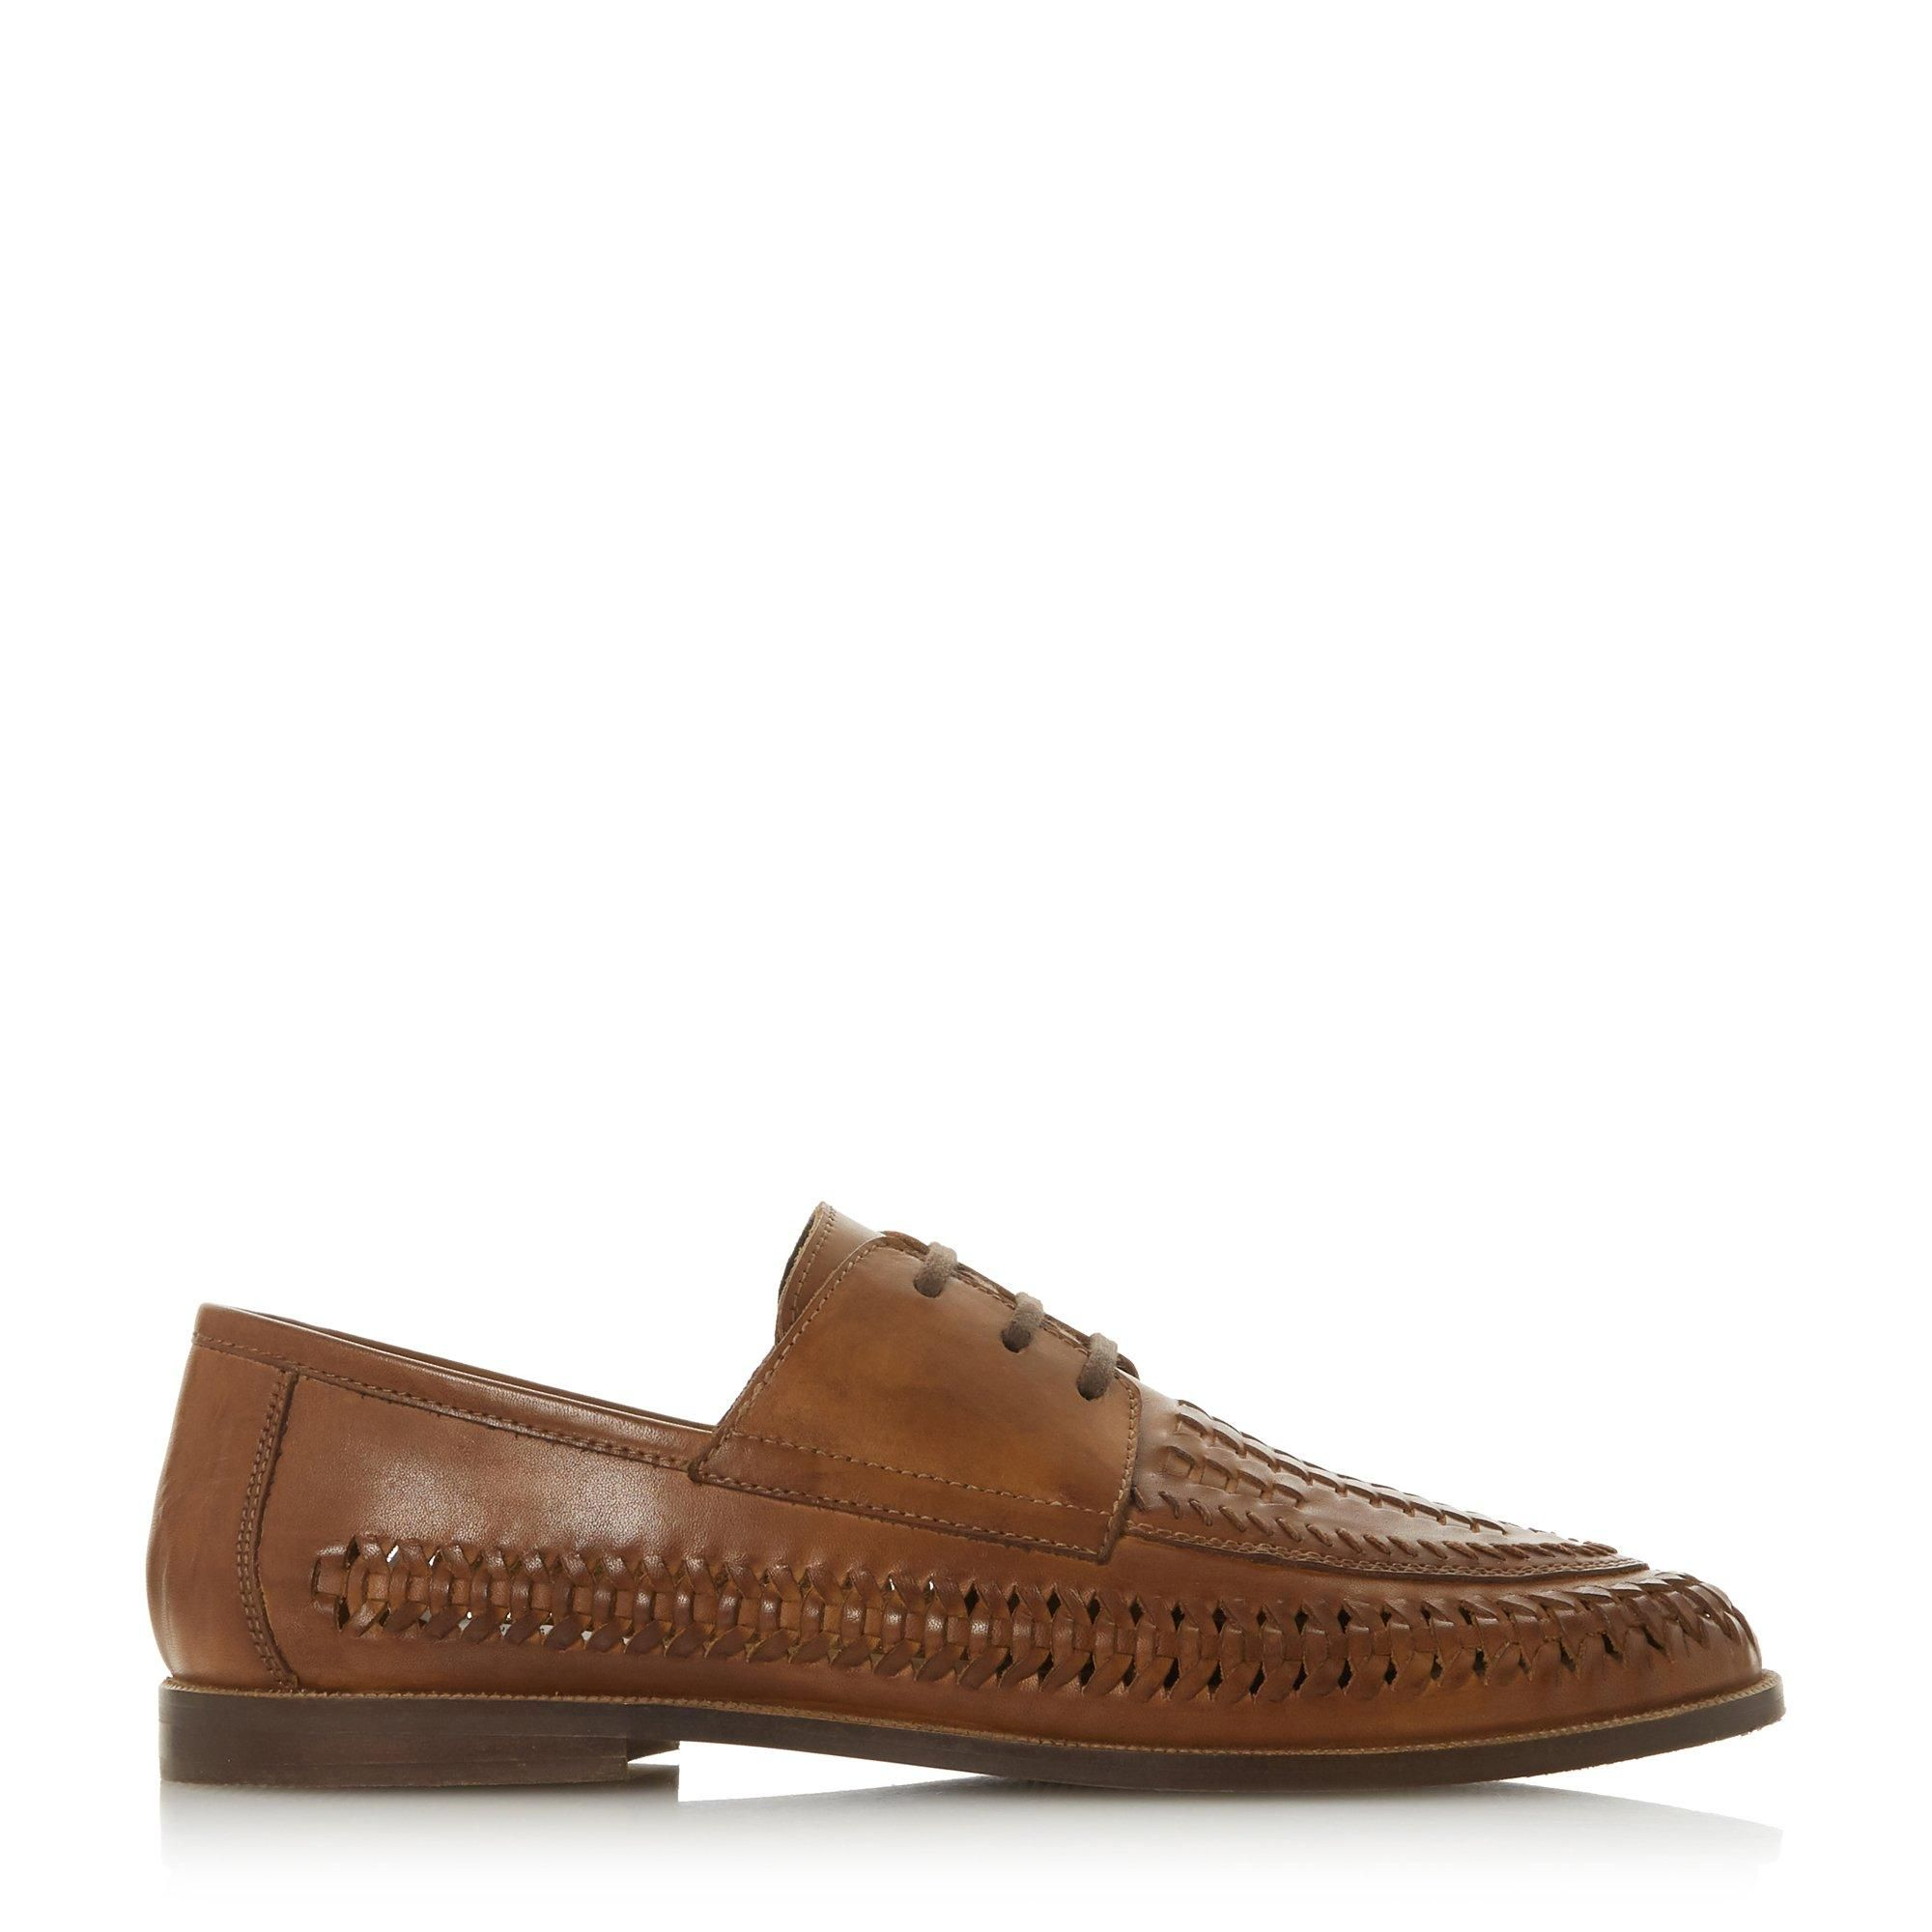 Dune Mens BRIGADE Lace Up Woven Loafer